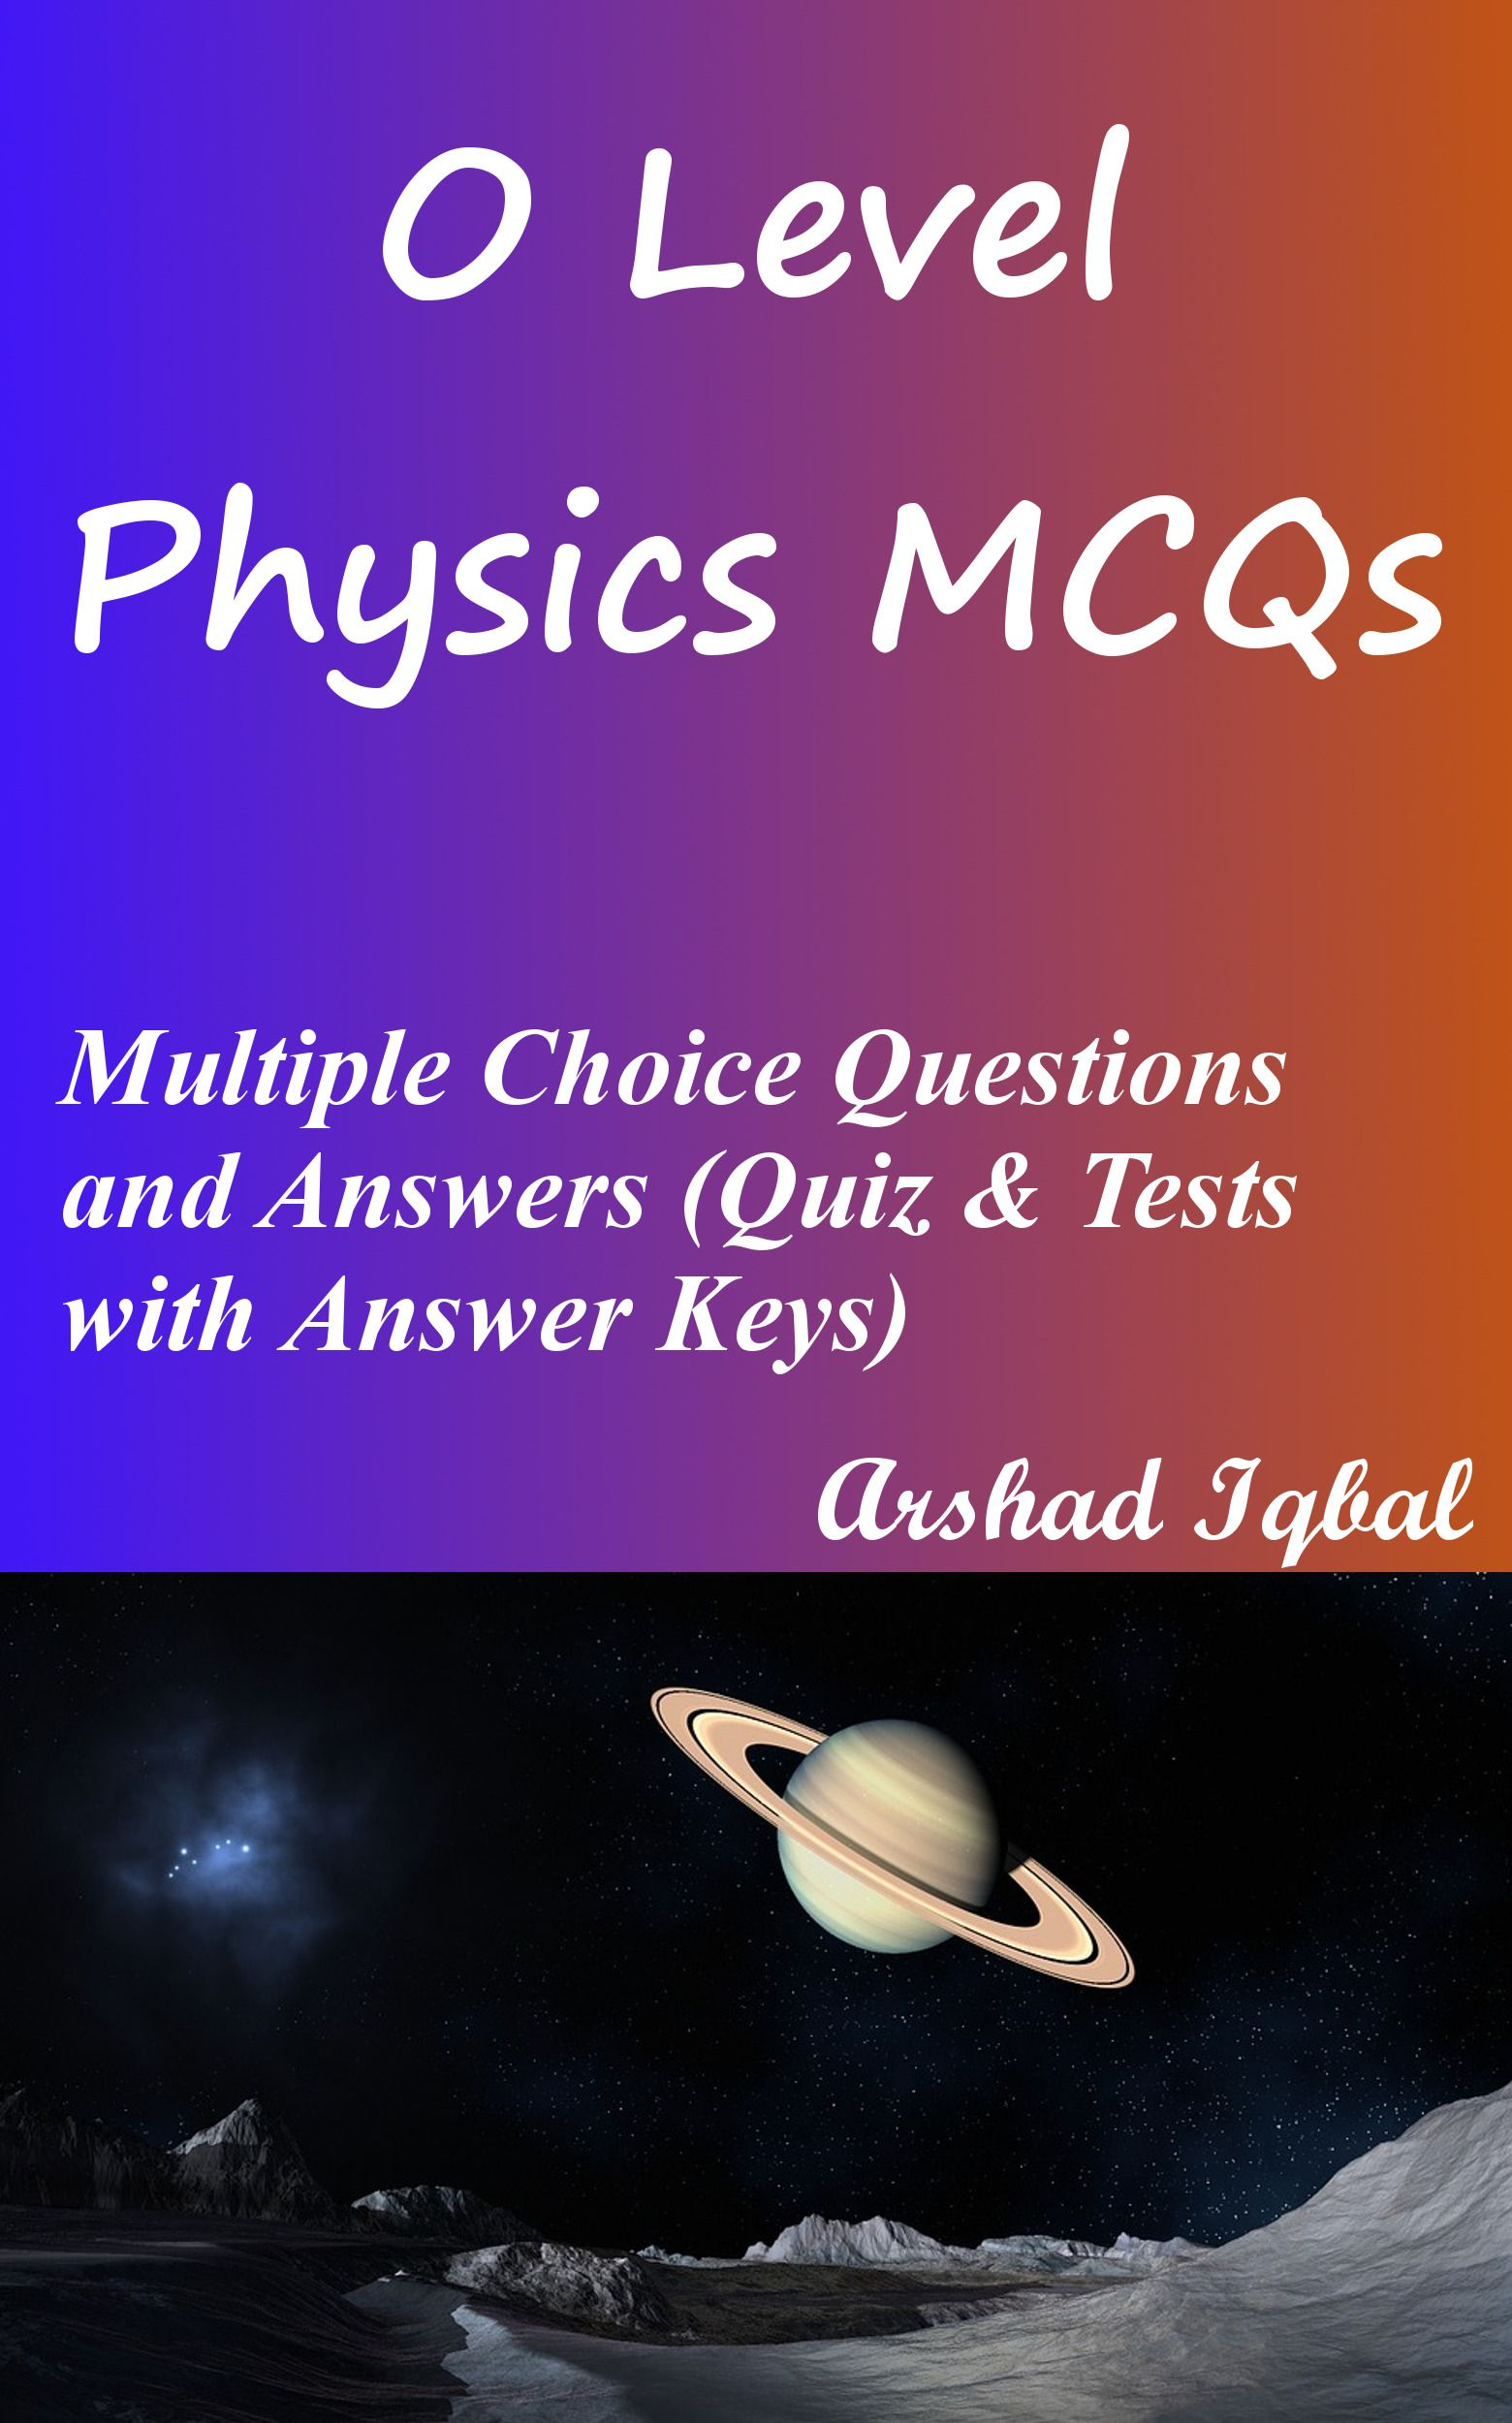 O level physics MCQs has 896 multiple choice questions  GCSE